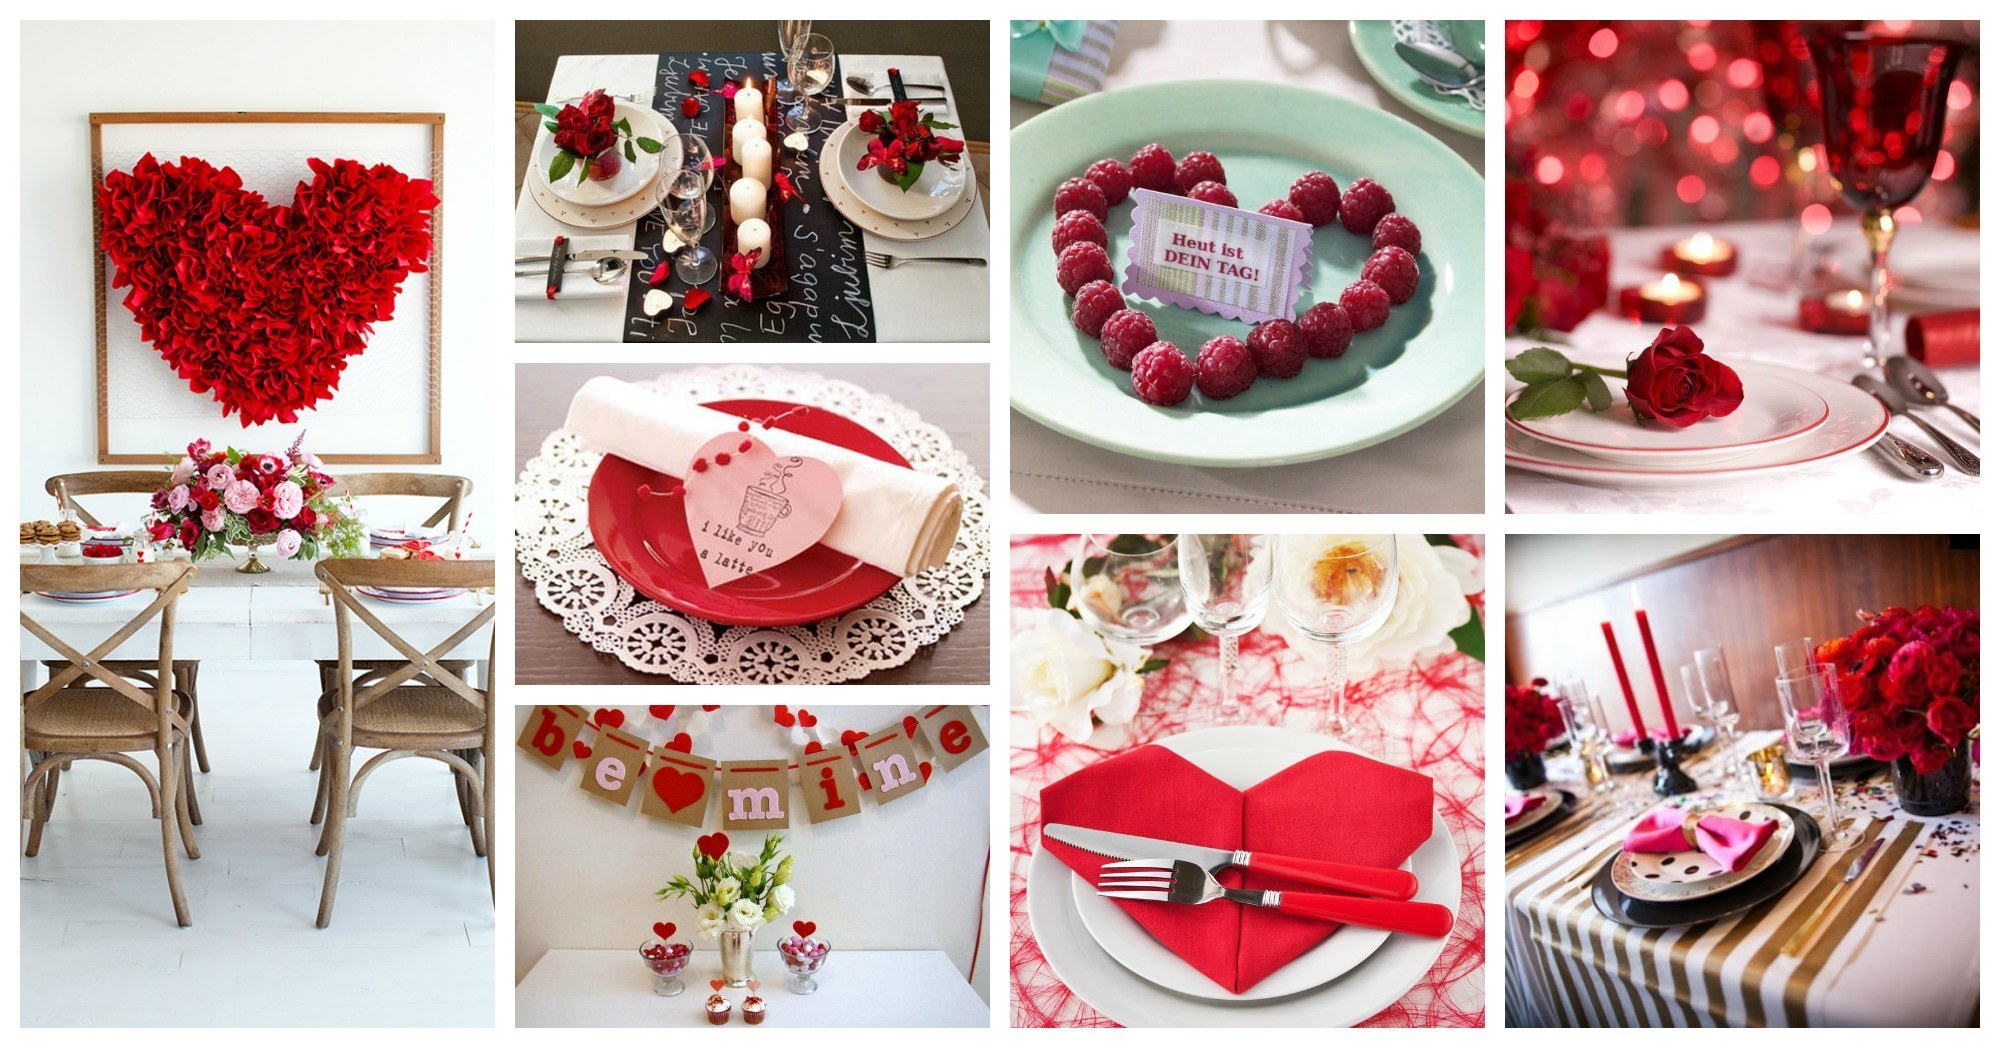 Valentine's Day Table Decorations That You Would Love To Copy